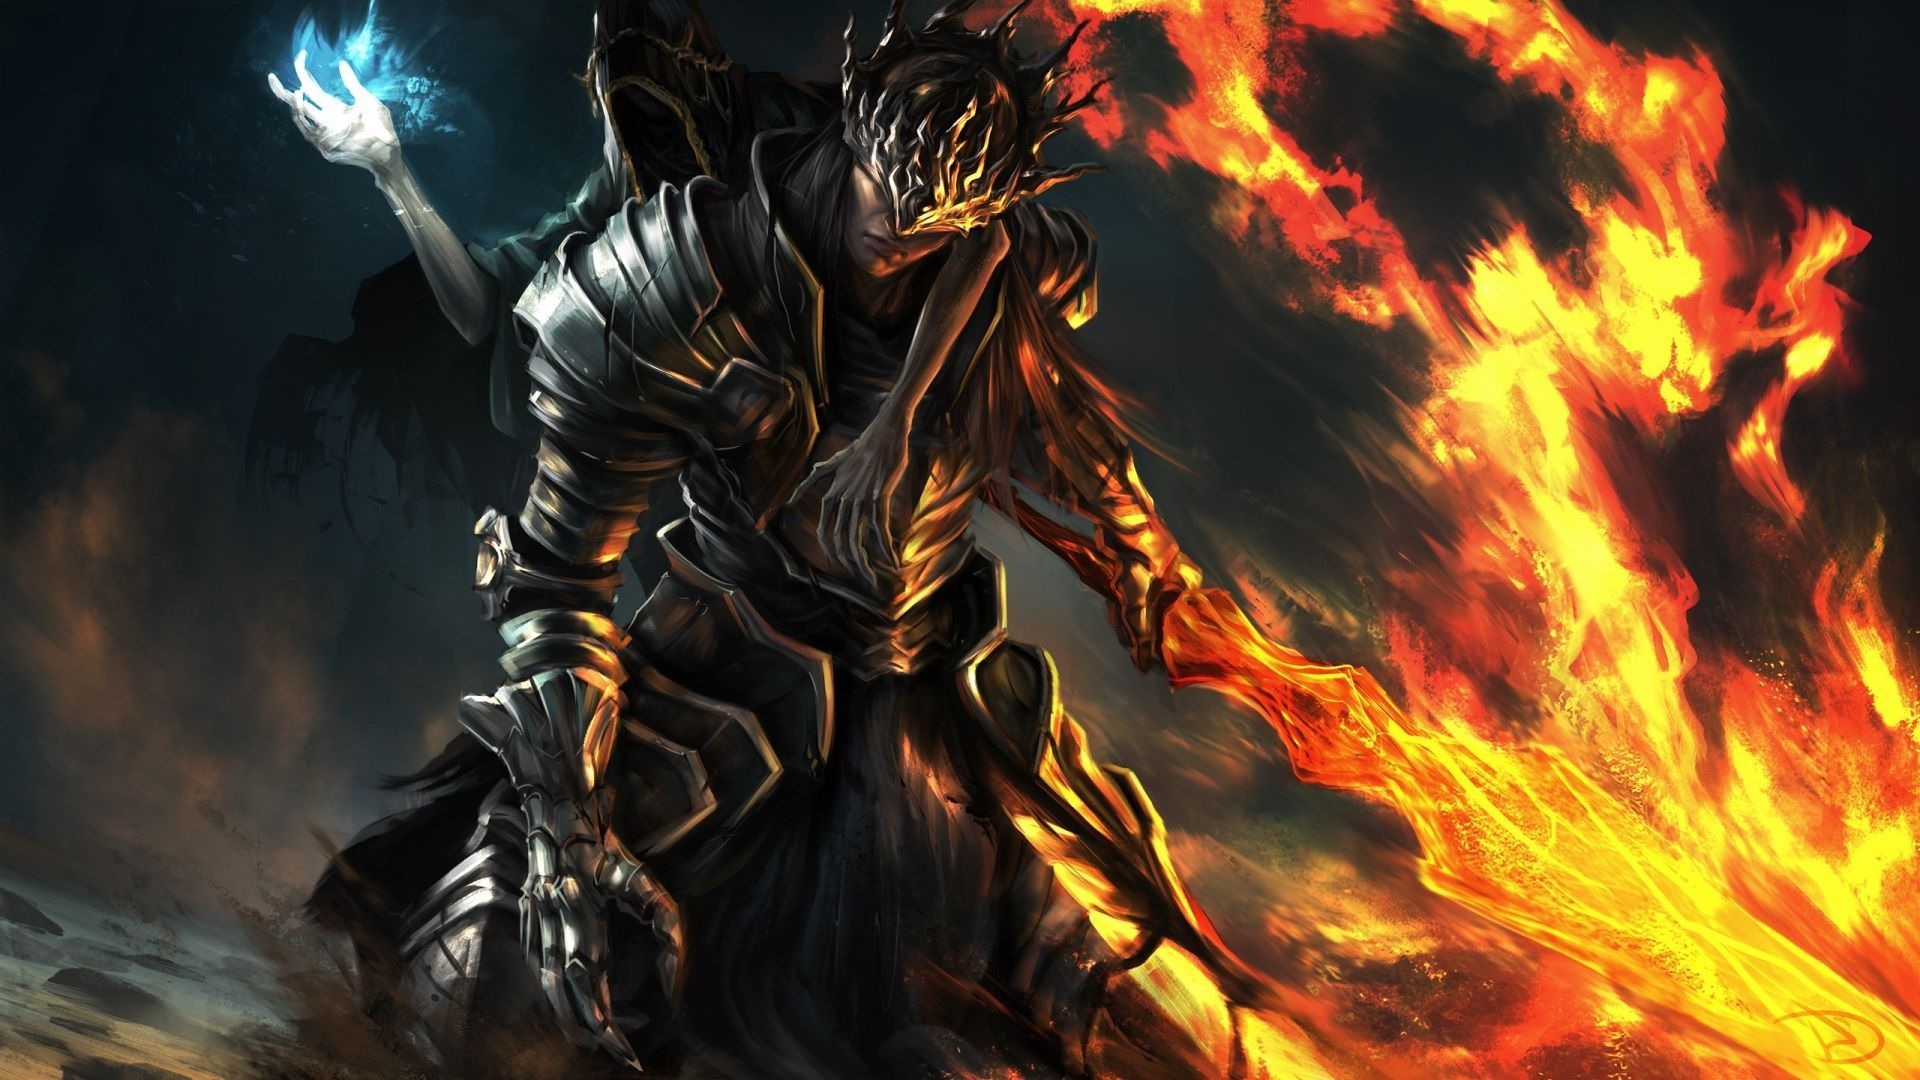 Pick Axe Dark Souls Wallpapers Top Free Pick Axe Dark Souls